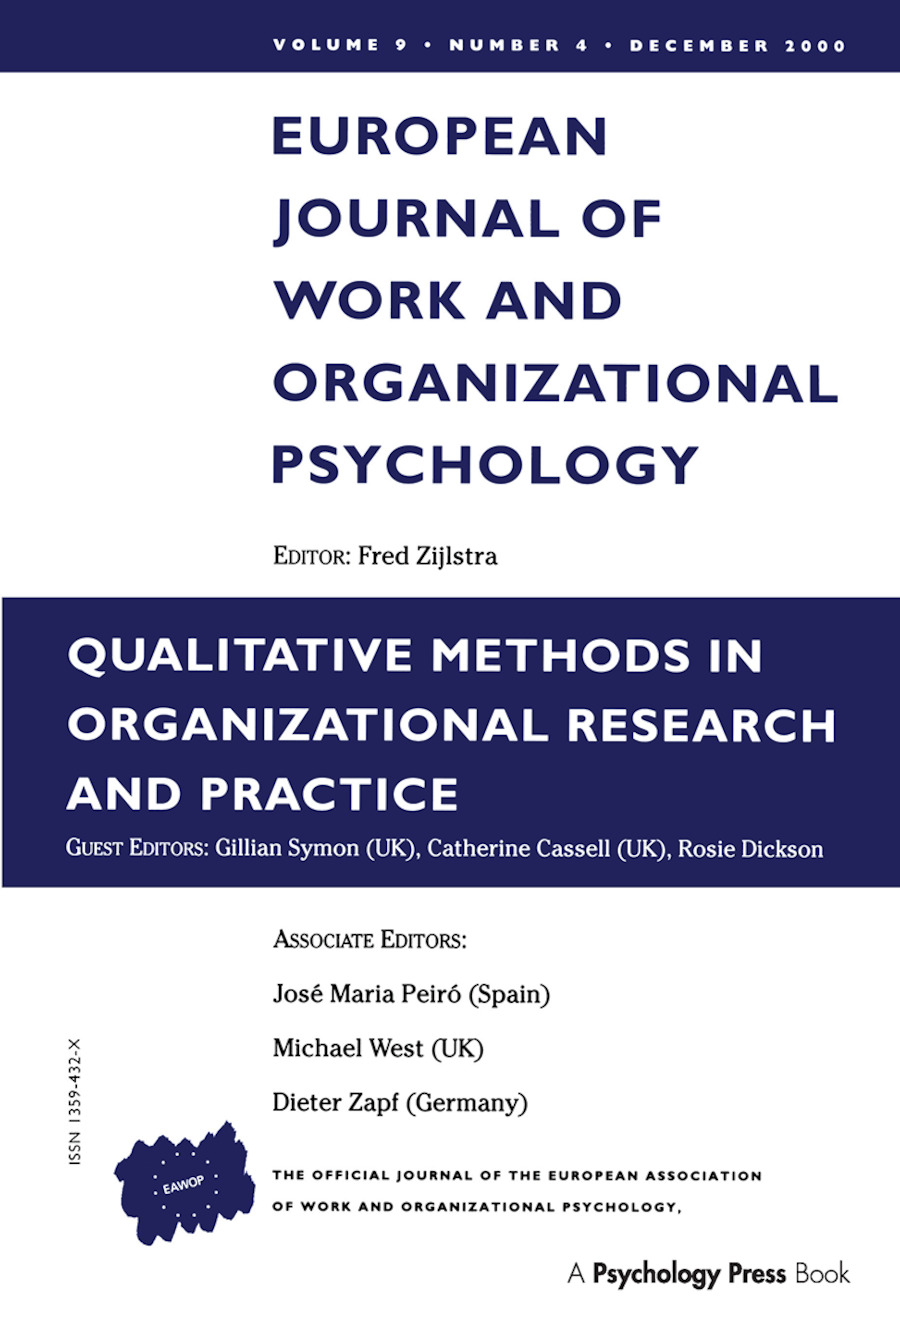 Qualitative Methods in Organizational Research and Practice: A Special Issue of the European Journal of Work and Organizational Psychology book cover